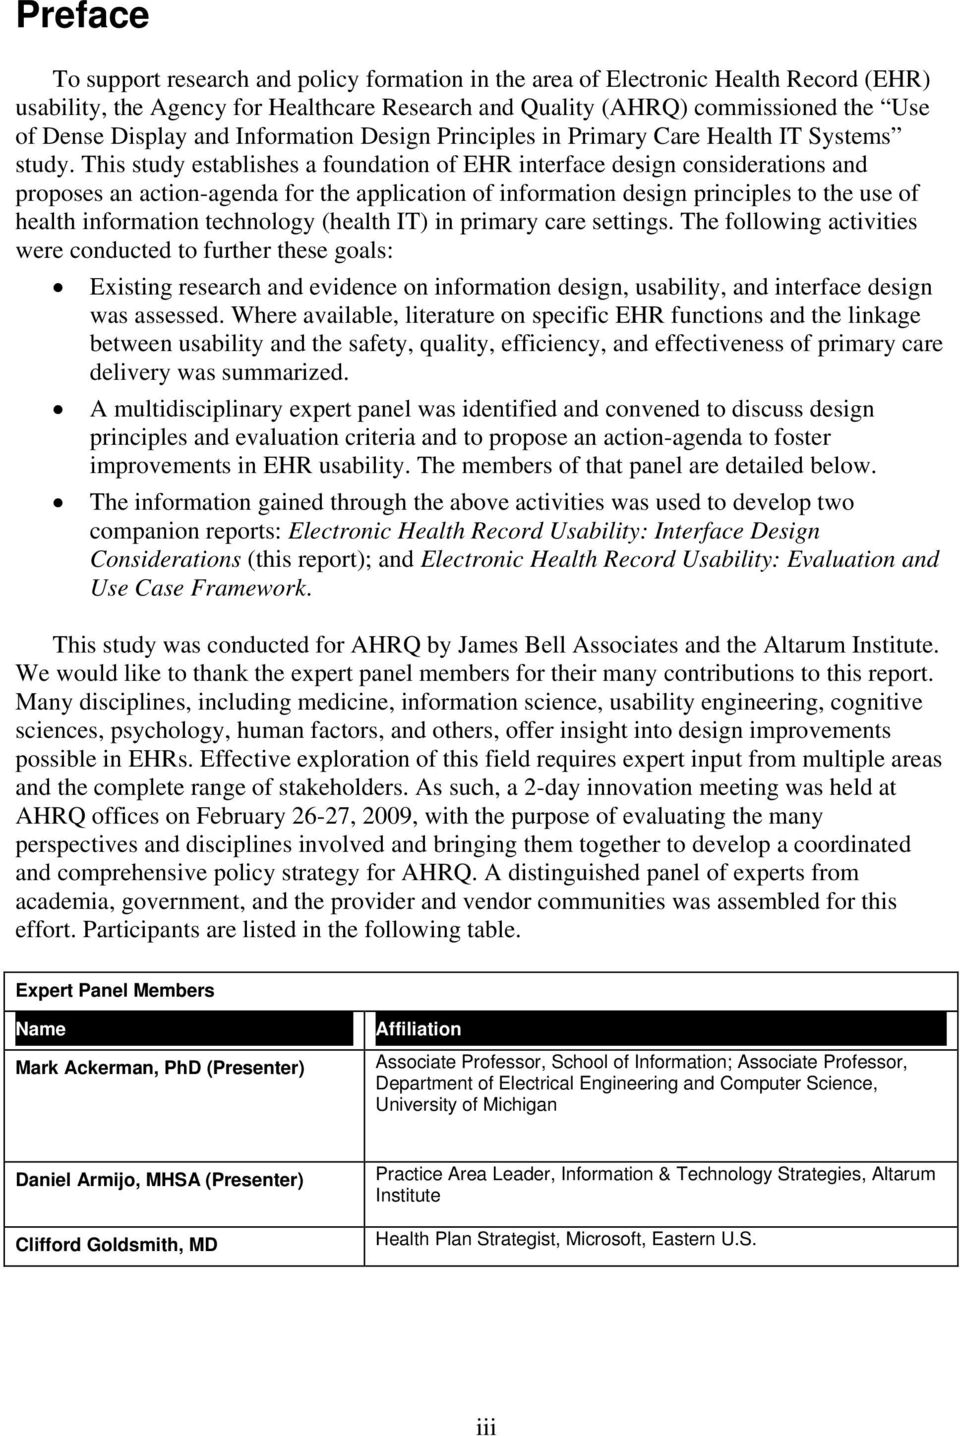 This study establishes a foundation of EHR interface design considerations and proposes an action-agenda for the application of information design principles to the use of health information